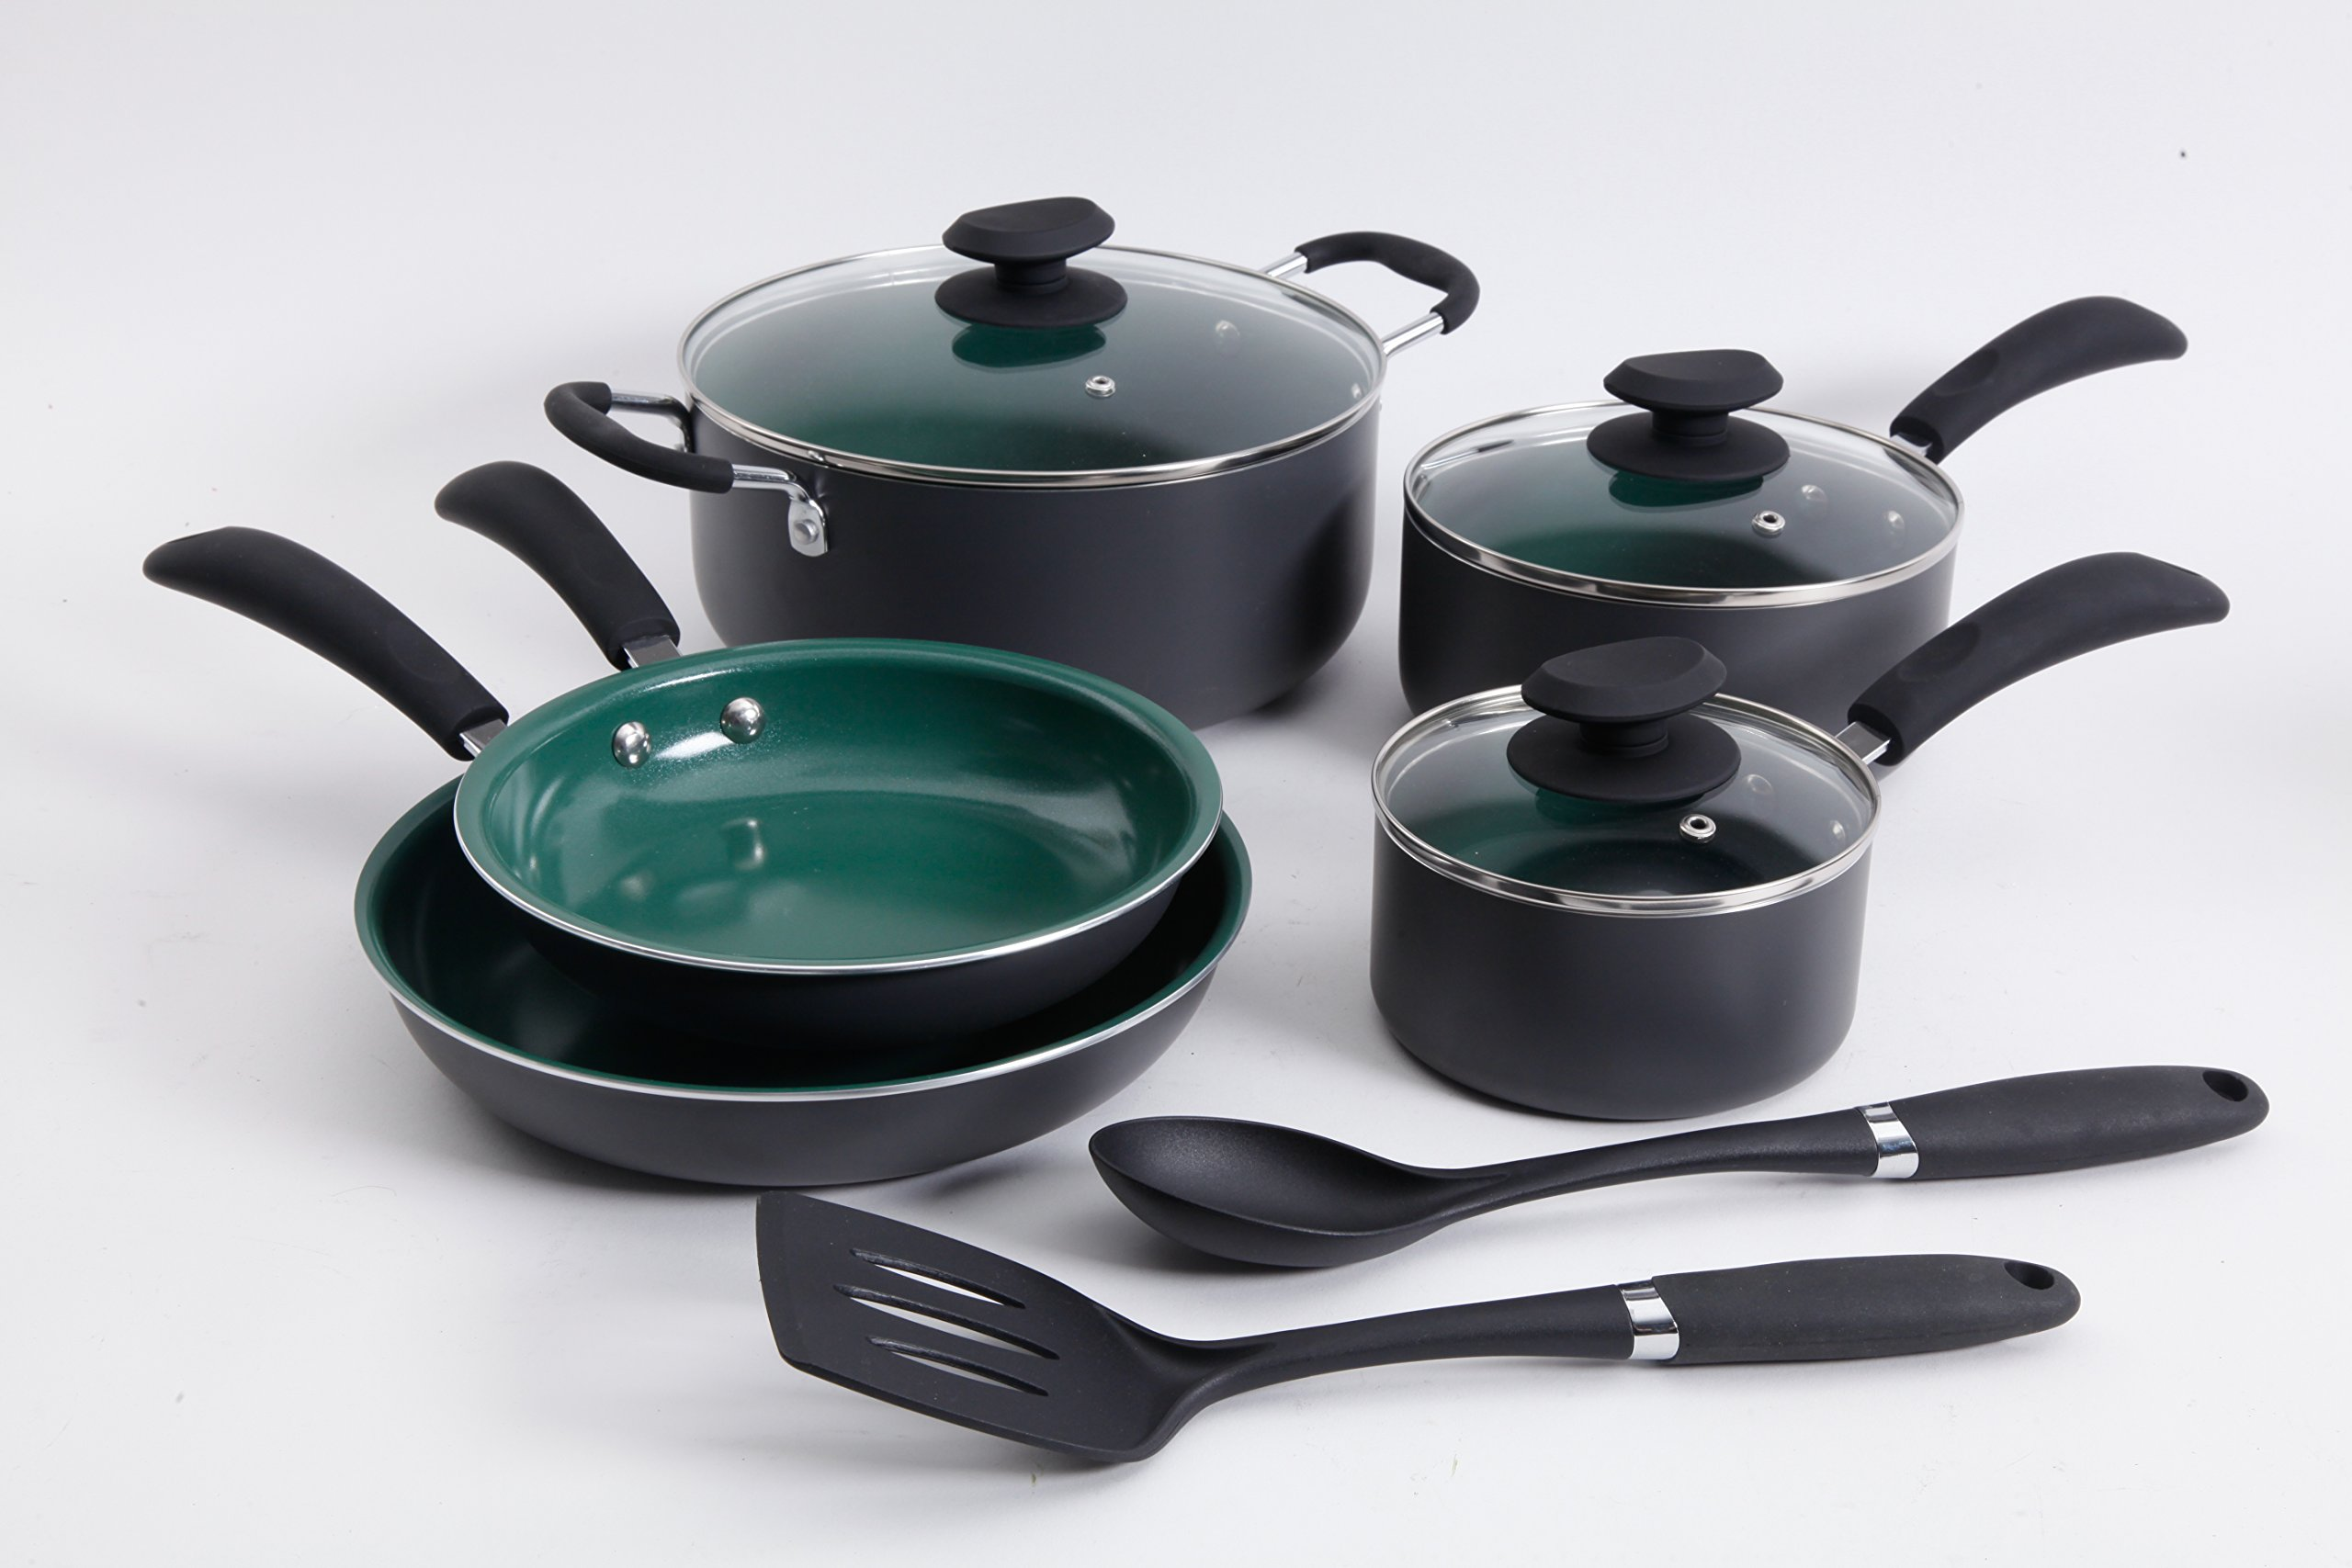 Gibson Home 109449.10 Eco-Friendly Hummington Aluminum Cookware Set Charcoal exteriors with Ceramic Non-Stick Interiors, Green